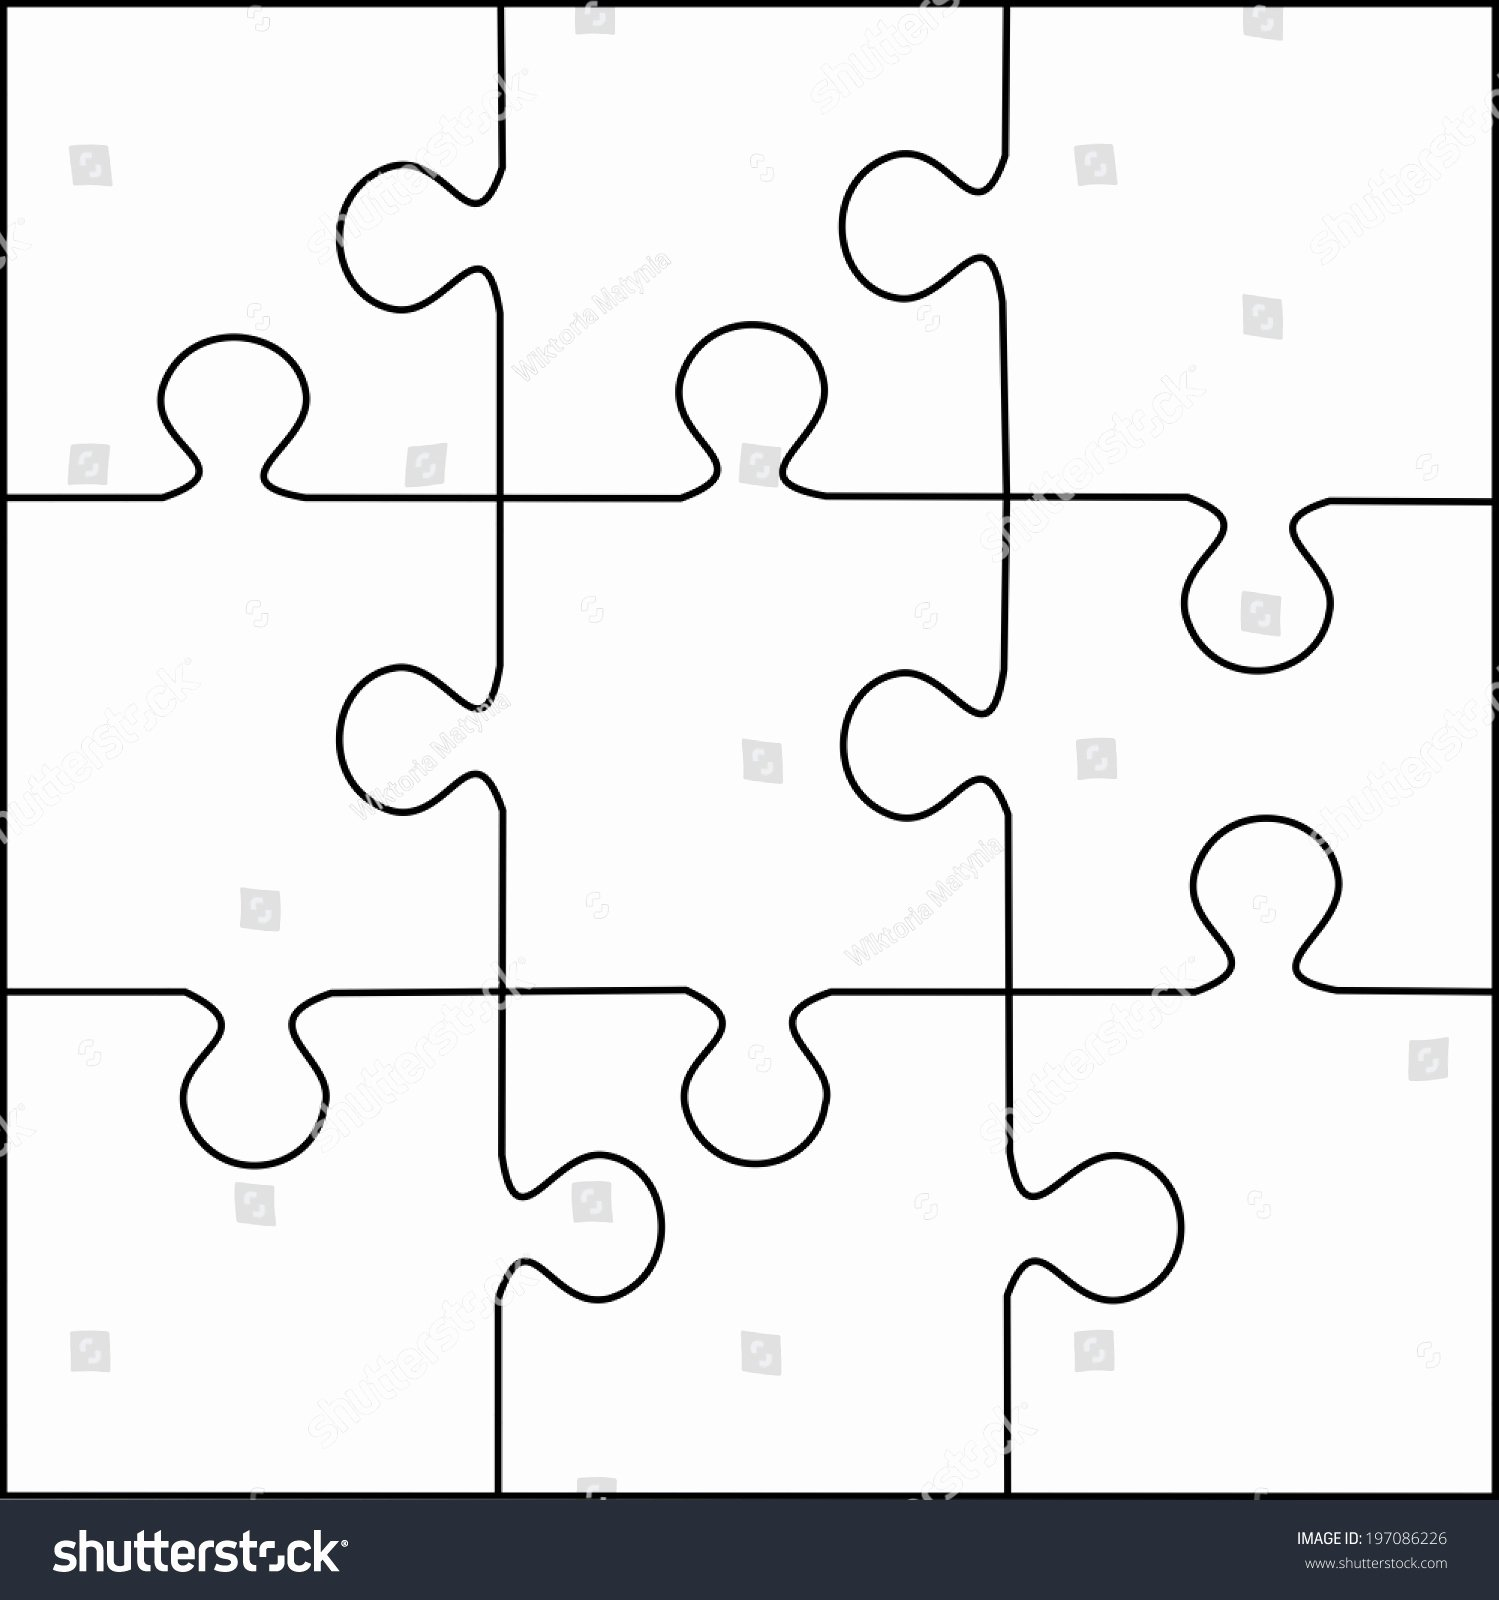 30 Piece Puzzle Template Inspirational Puzzle Template 9 Pieces Vector Stock Vector